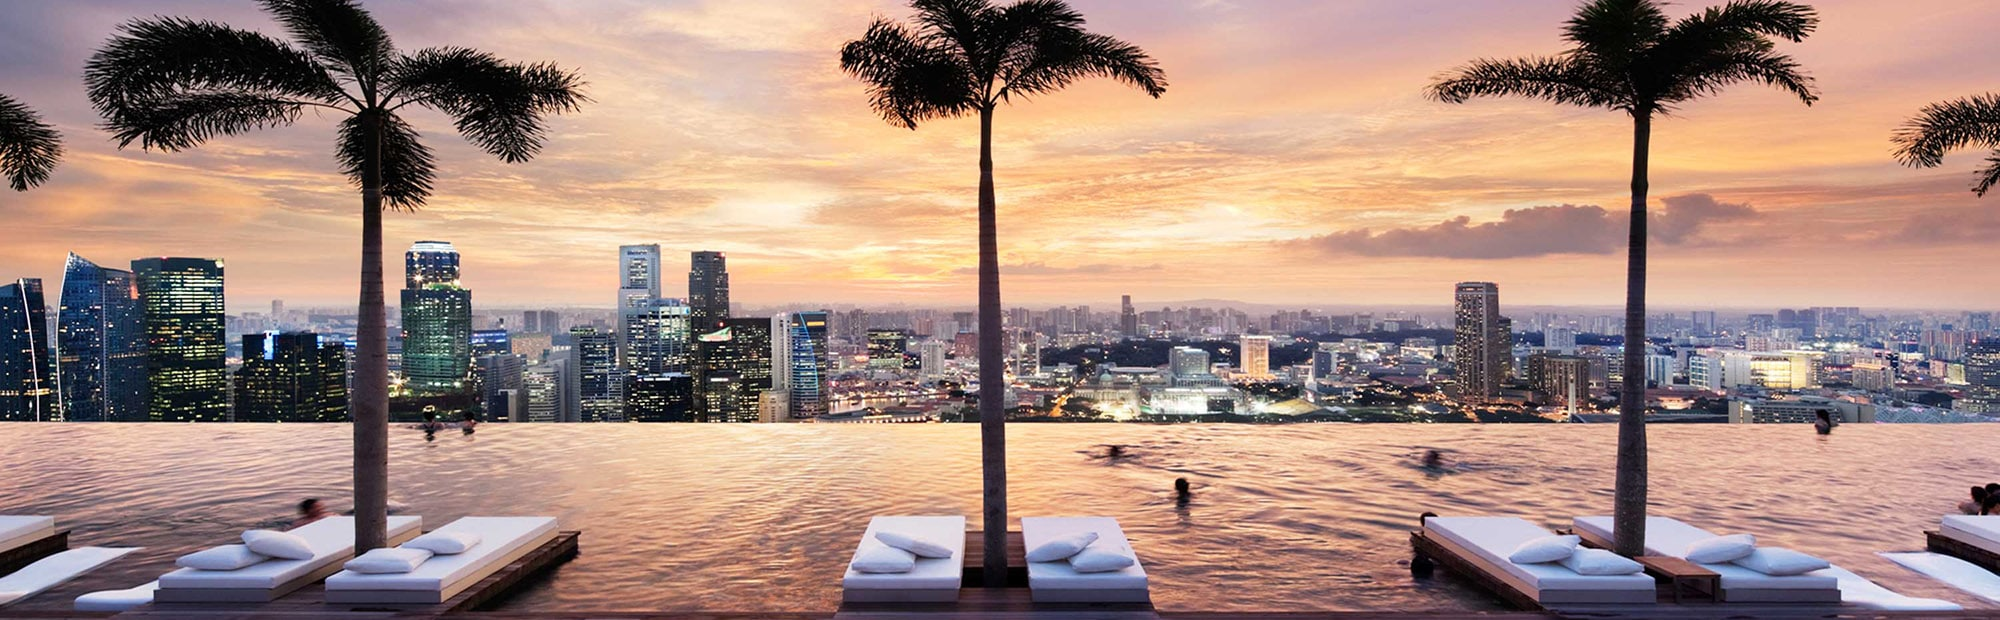 Skypool of Marina Bay Sands Hotel Singapore in Marina Bay Area